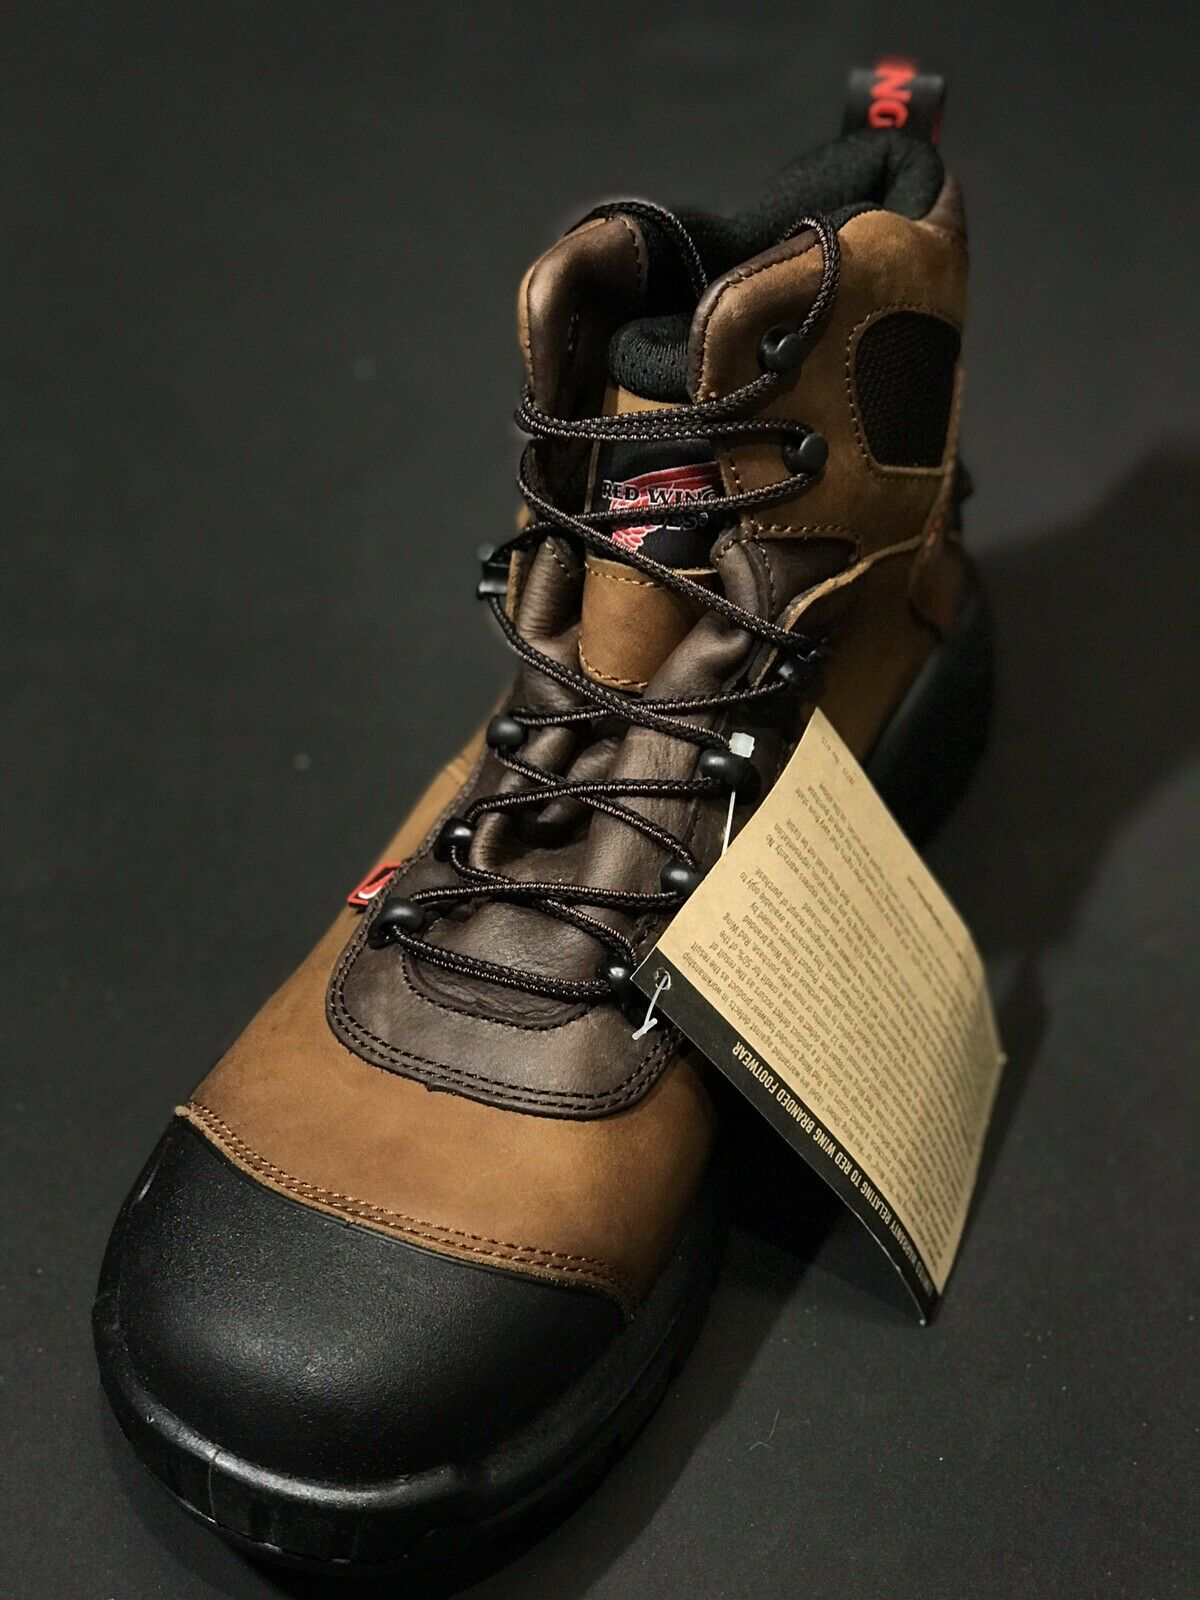 d3444fdc337 New Red Wing 436 Men Electrical Hazard Waterproof Safety Boot 6 Inch Size  11 H